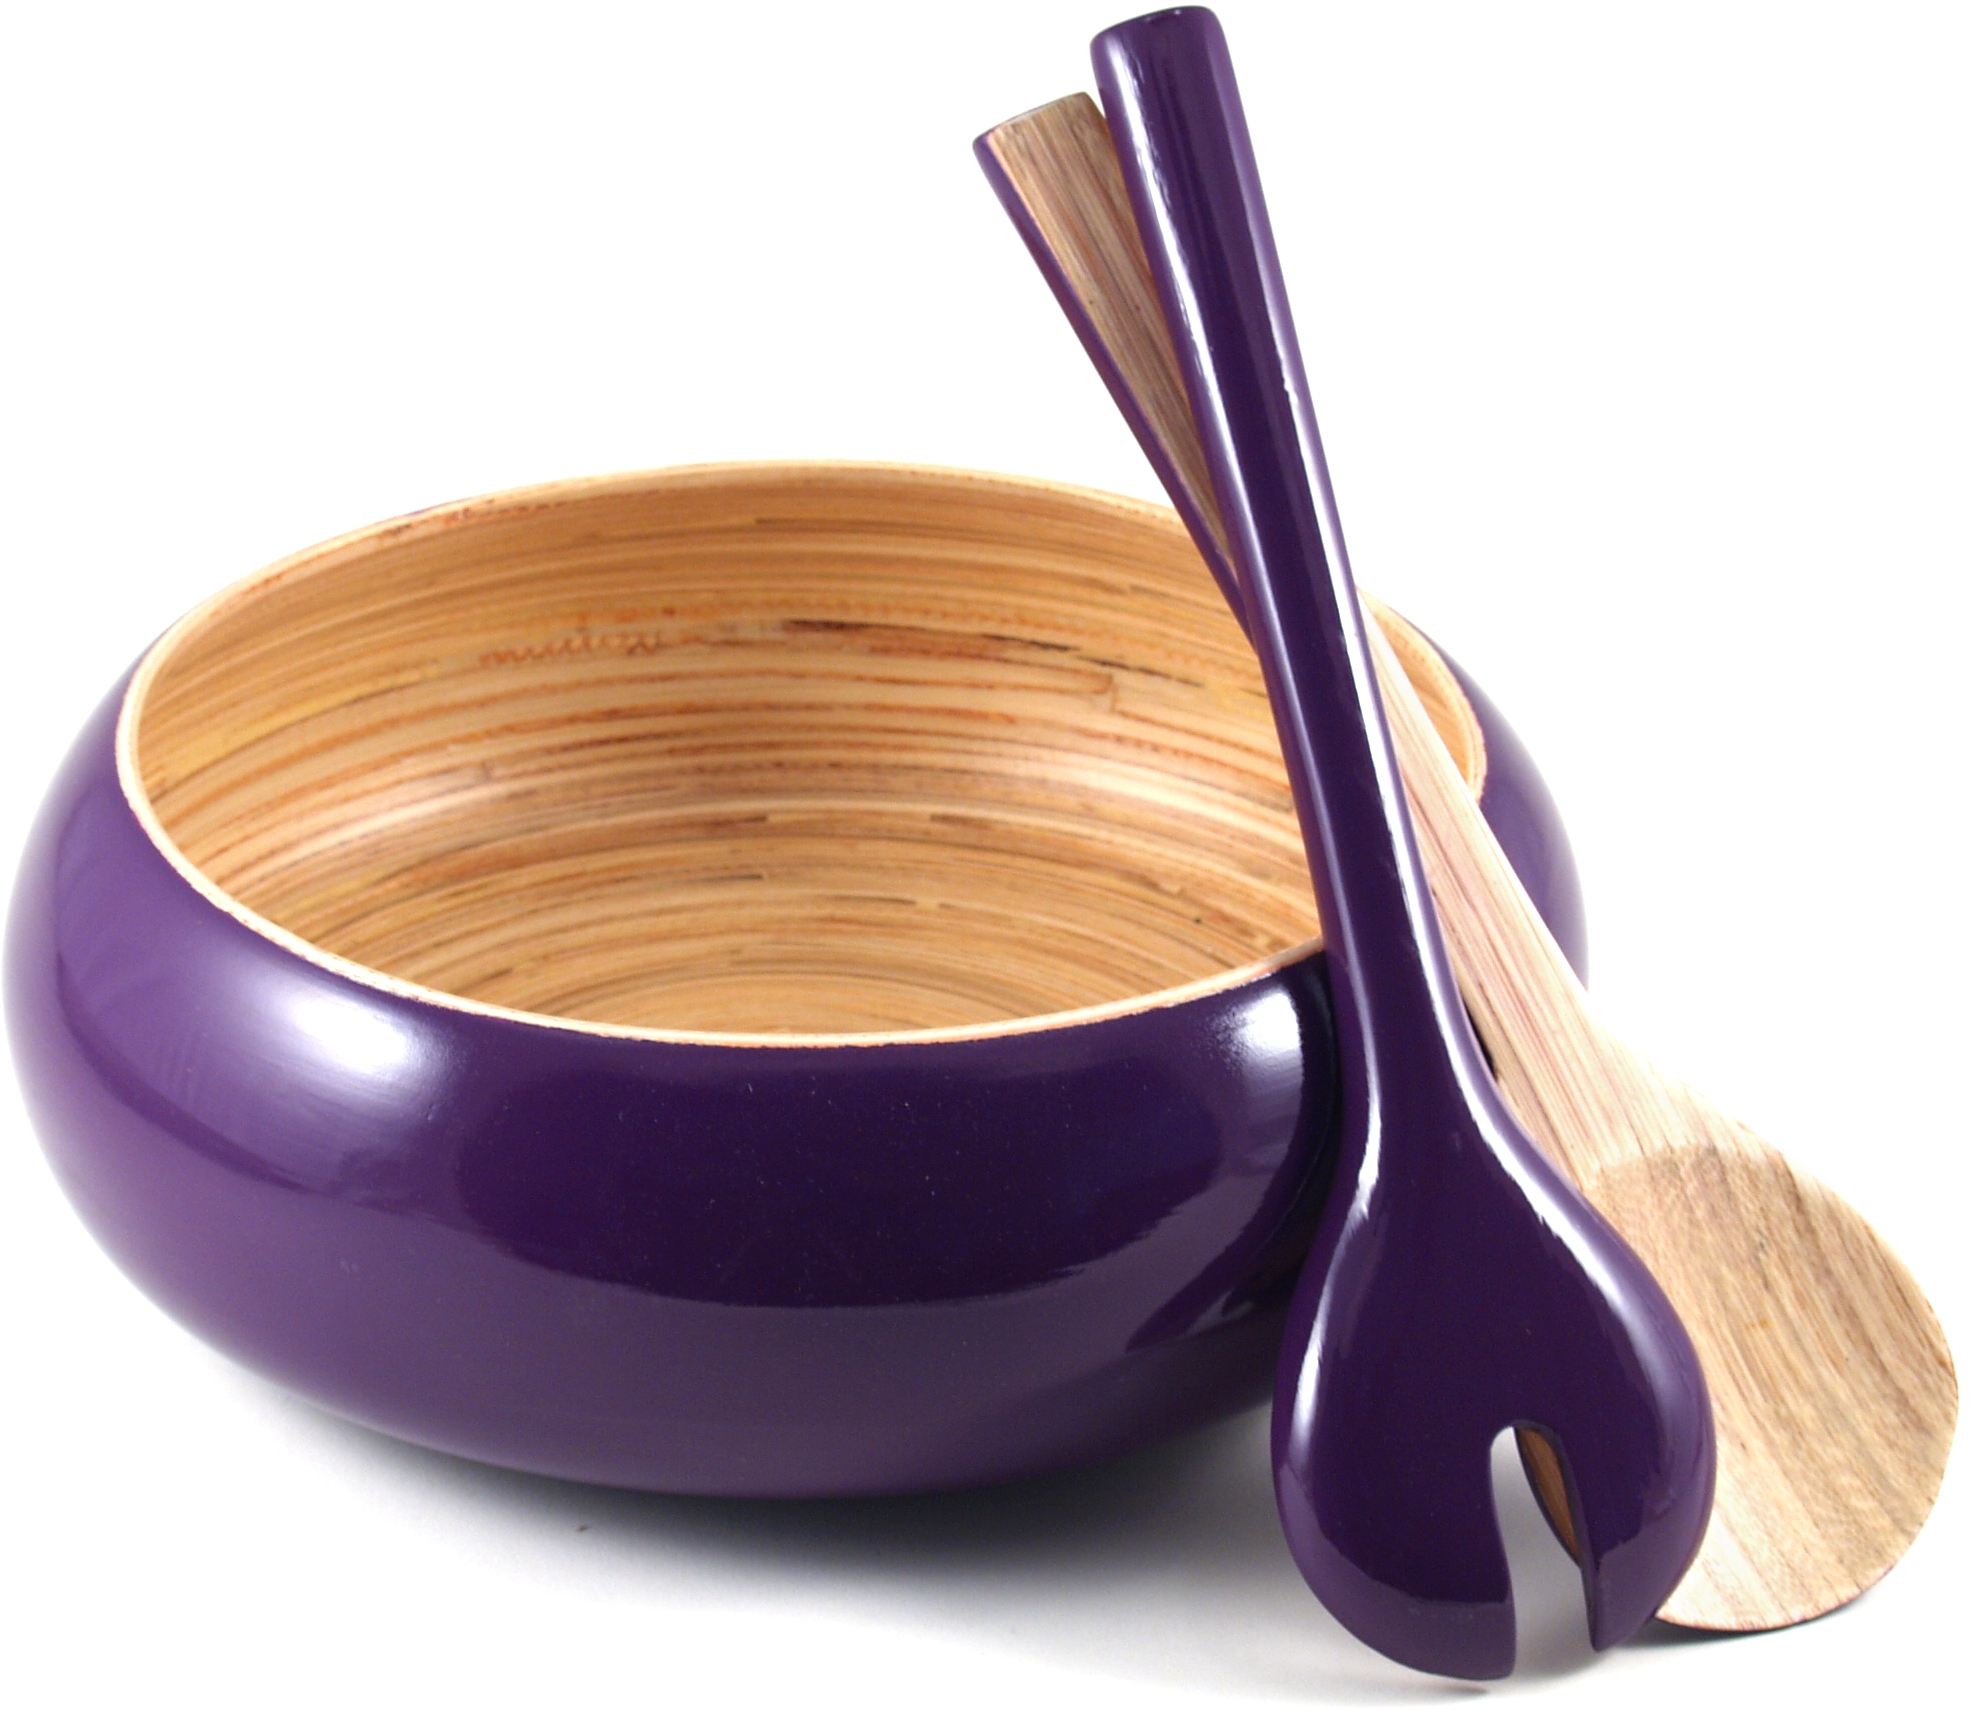 Core Bamboo Eggplant Shallow Bowl with Servers